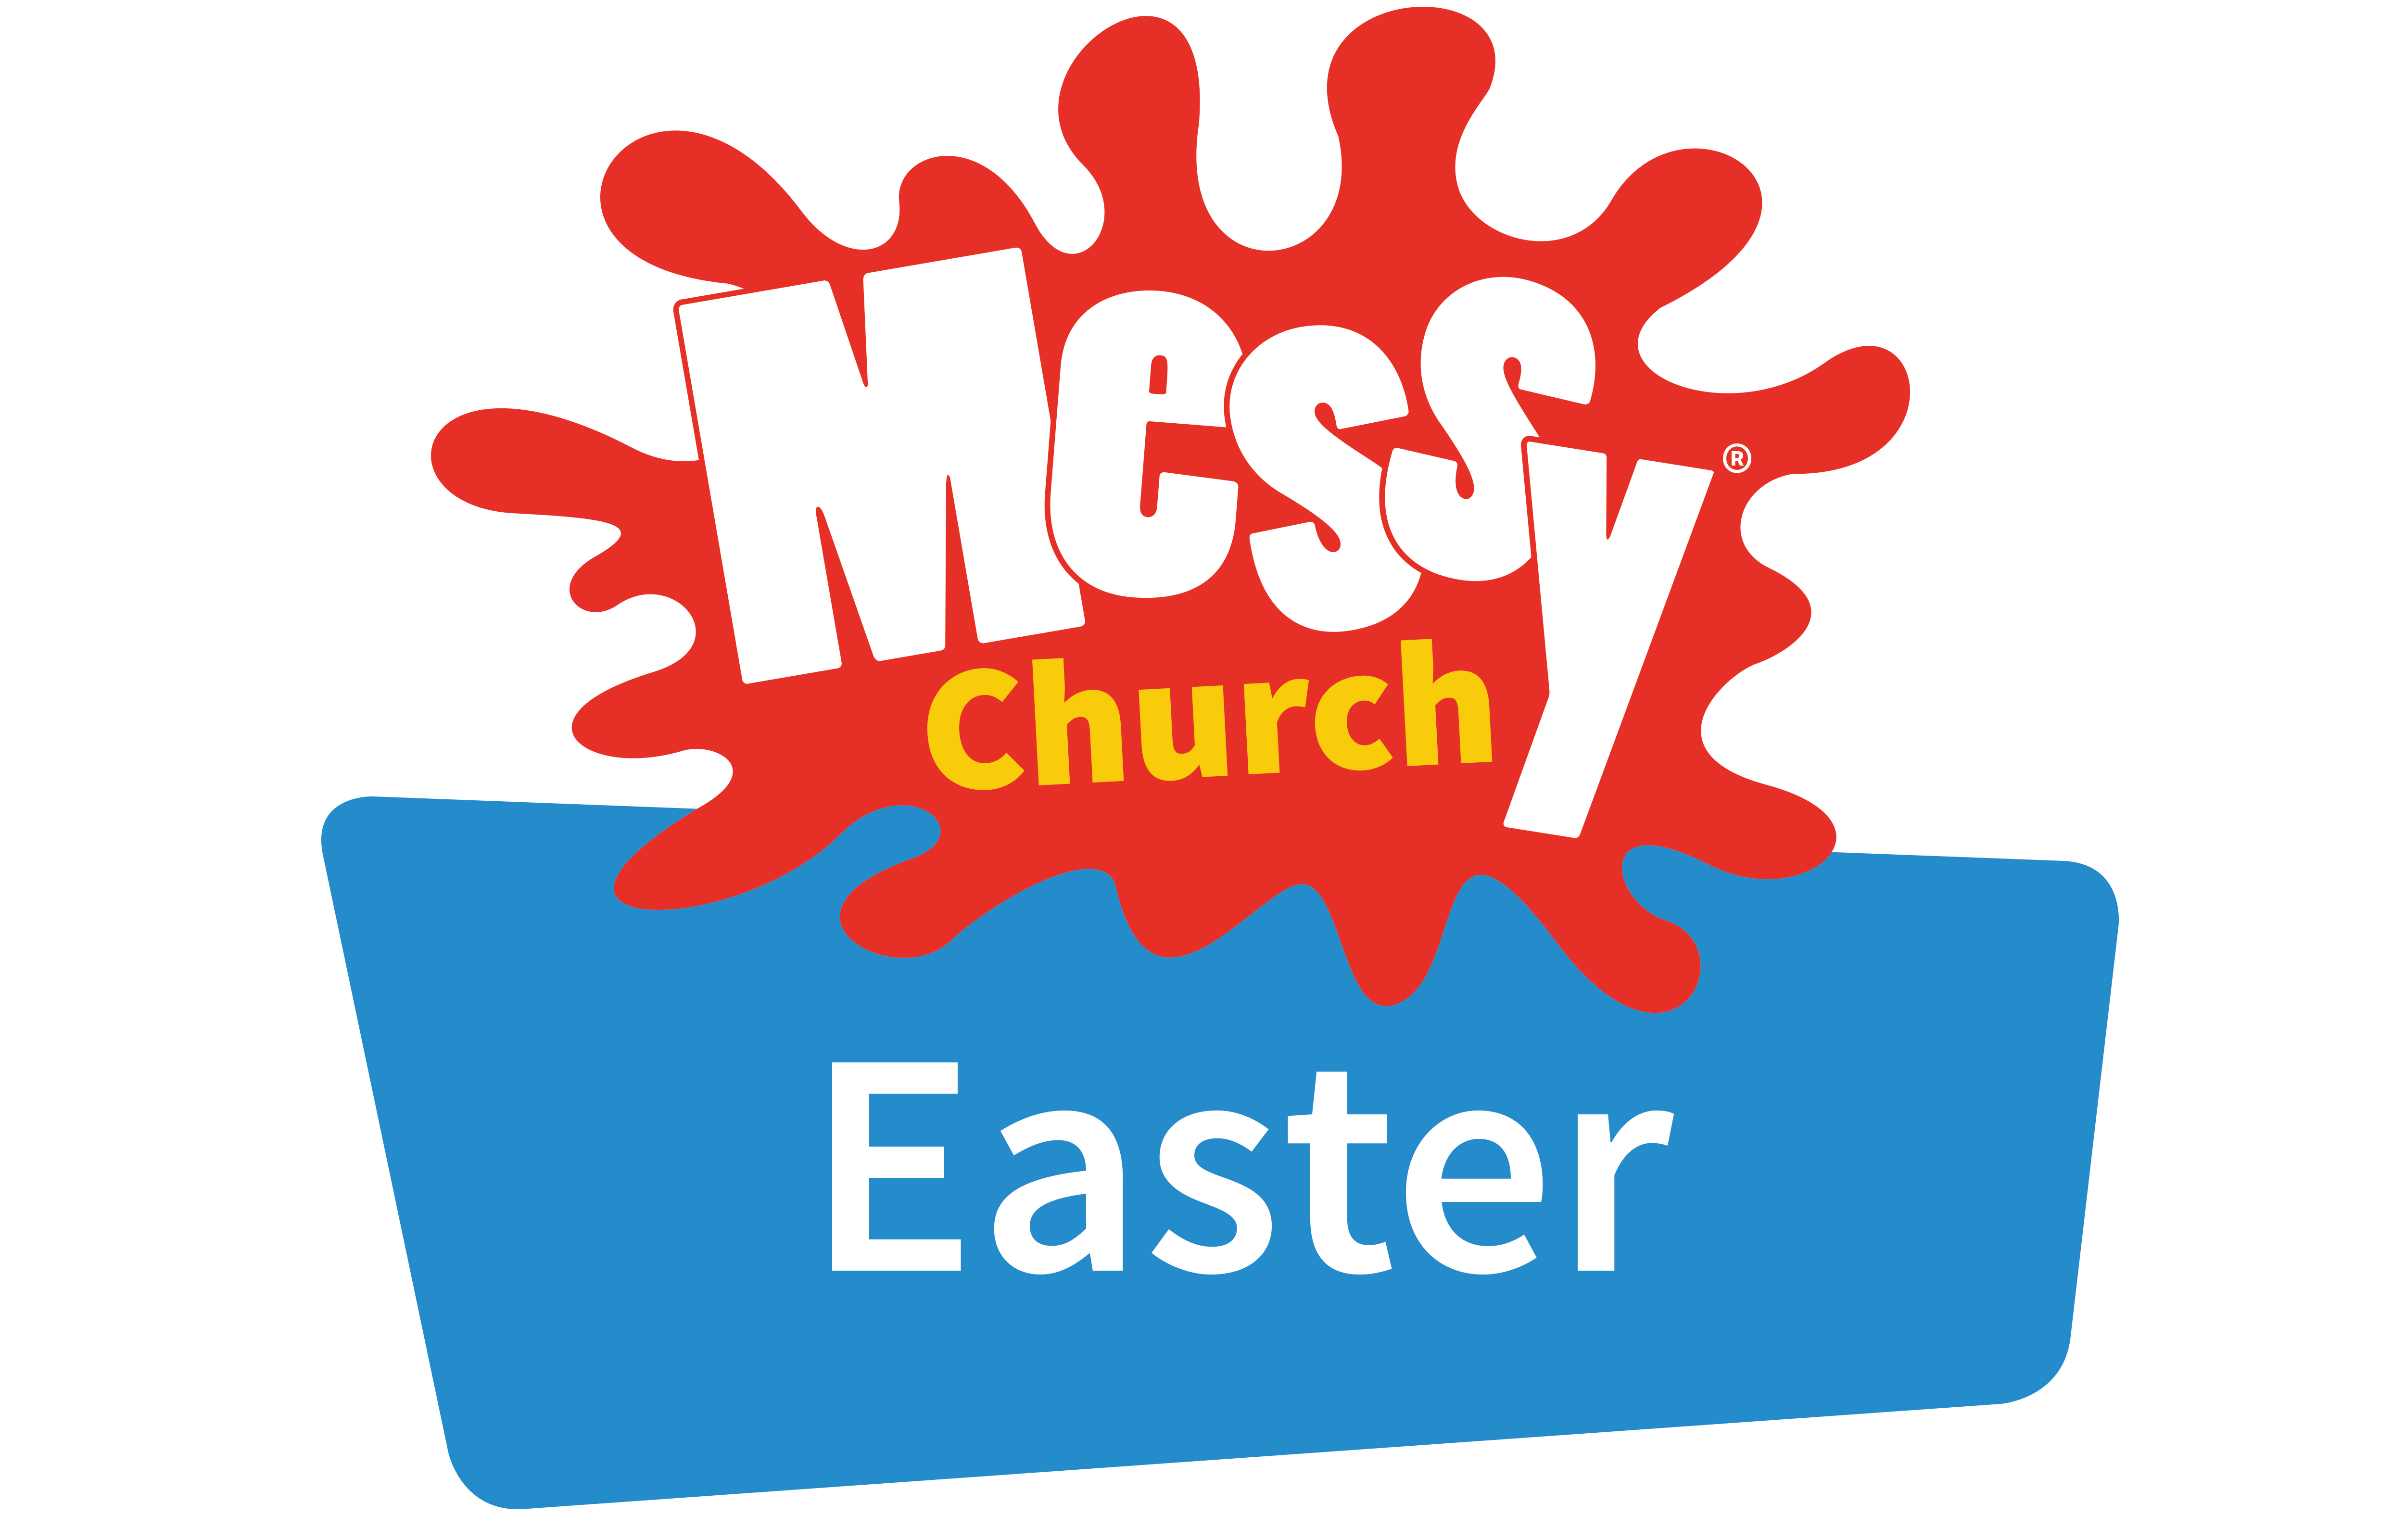 Messy-Church-logo Easter®